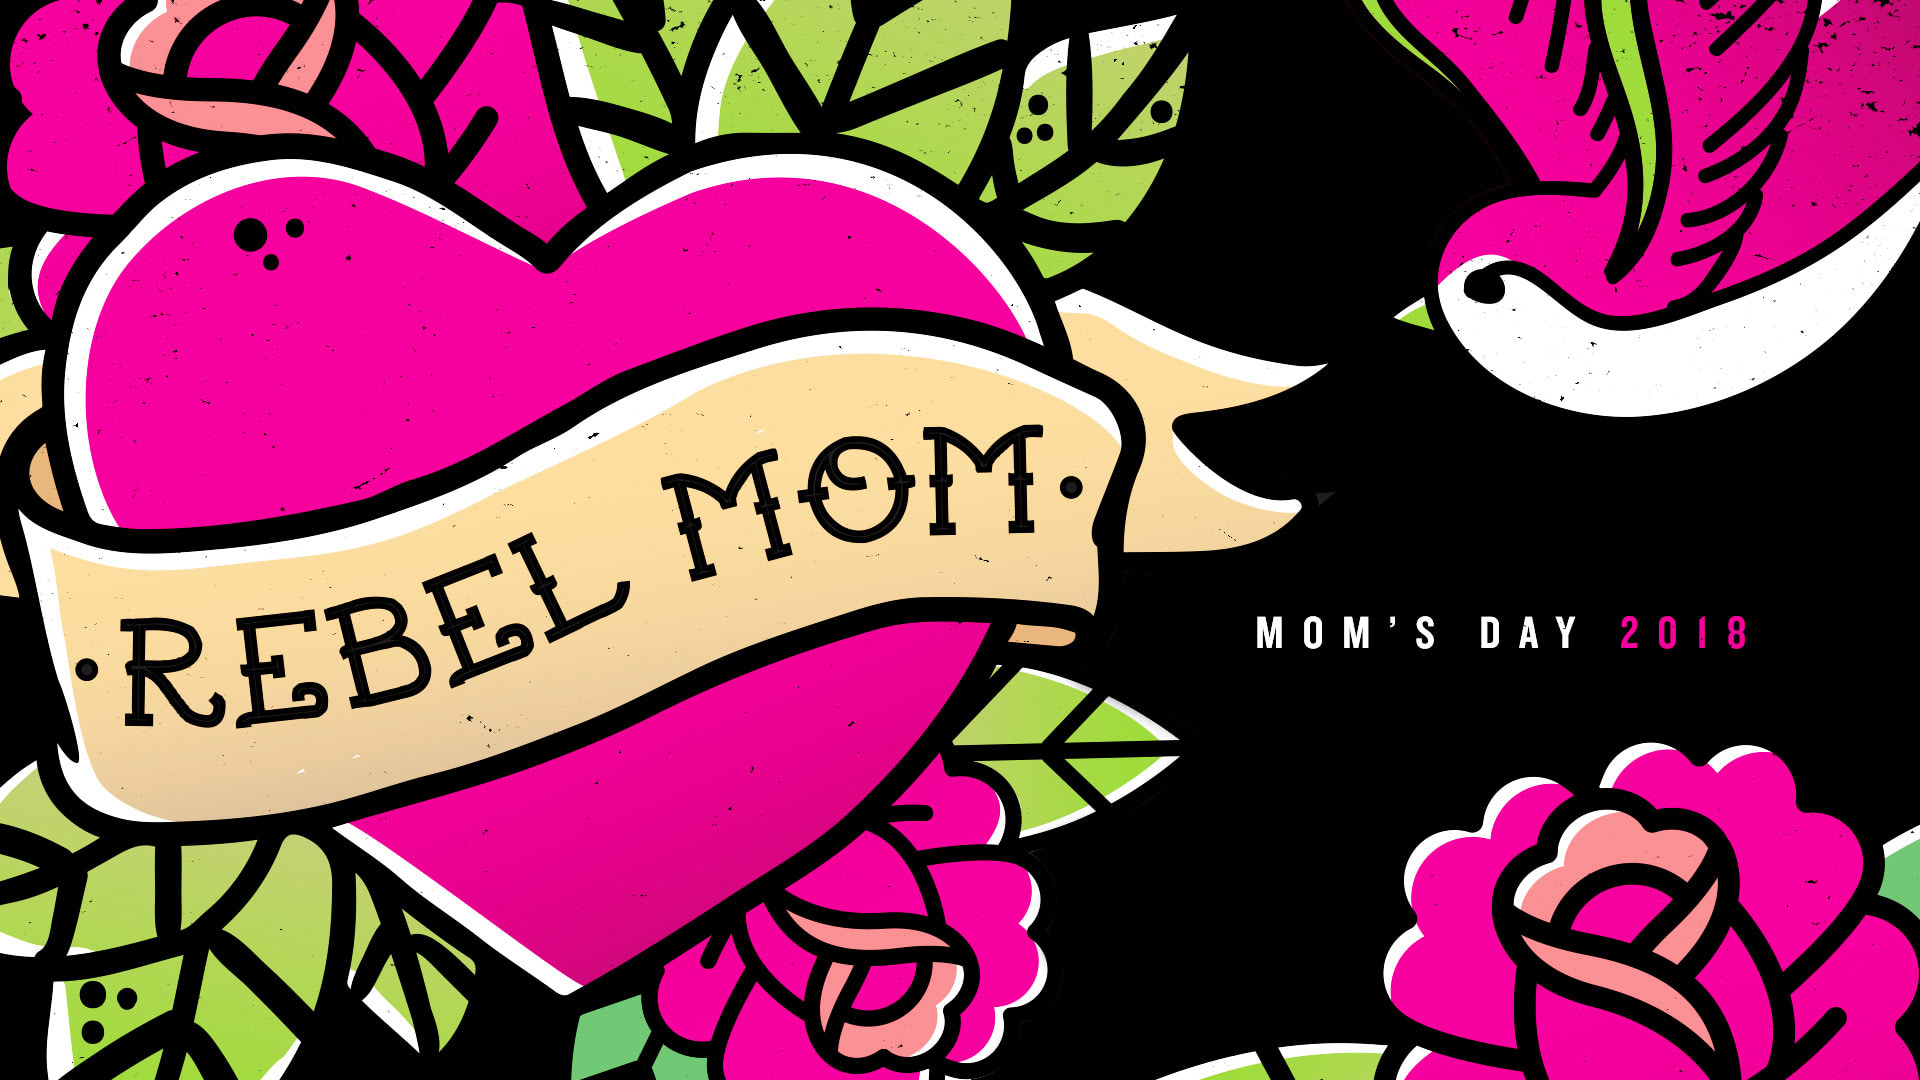 Mom's Day 2018